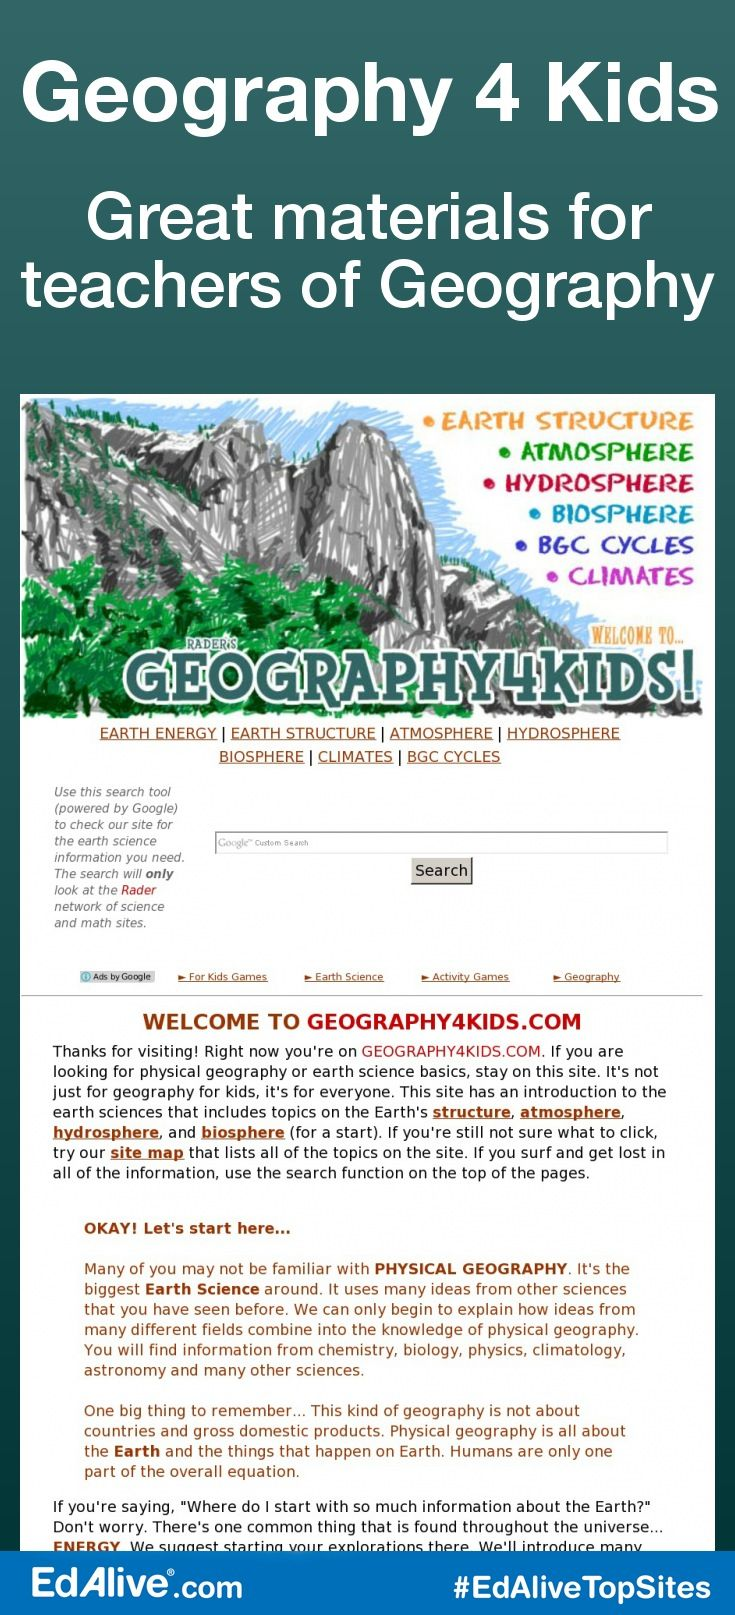 Great materials for teachers of Geography | Where kids learn about earth structure, atmosphere, hydrosphere, biosphere, BGC Cycles, Climates #Geography #EdAliveTopSites